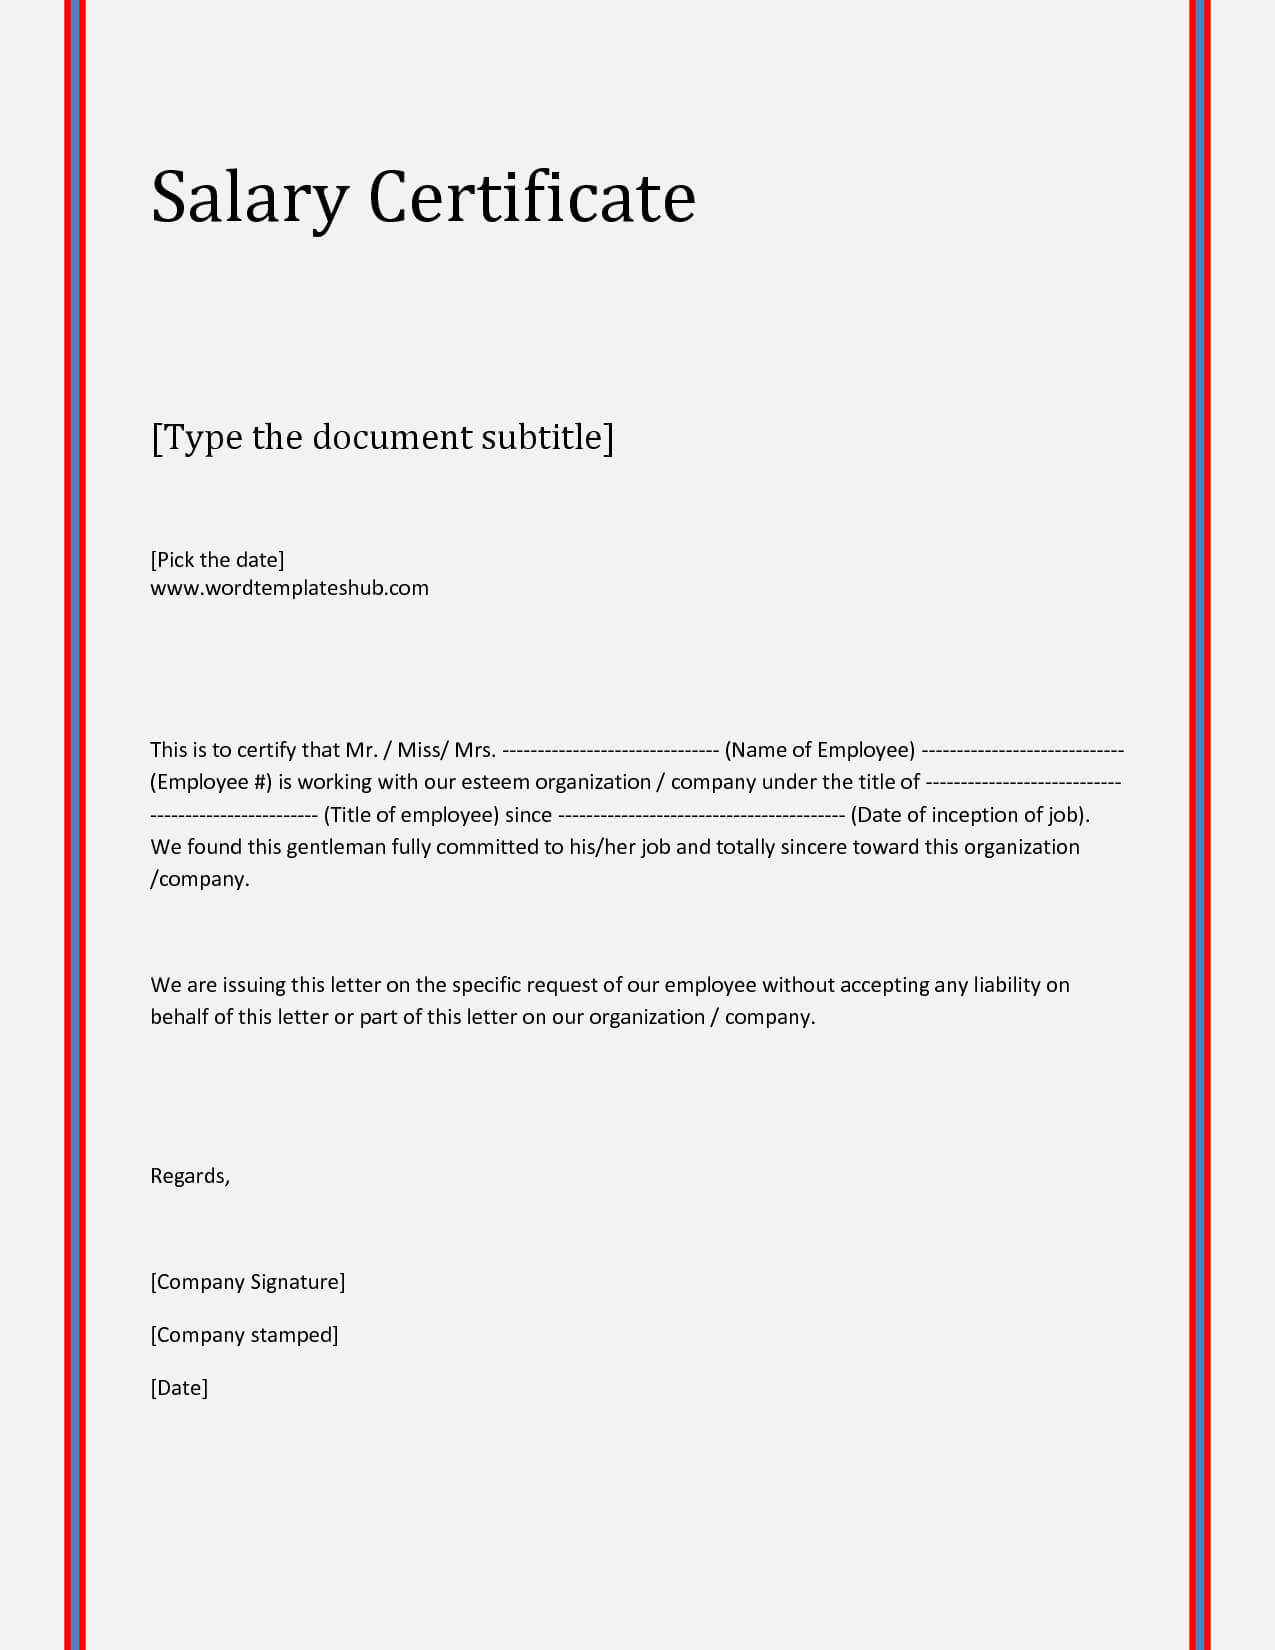 Request Letter For Certificate Employment Nurses Cover Proof Regarding Sample Certificate Employment Template